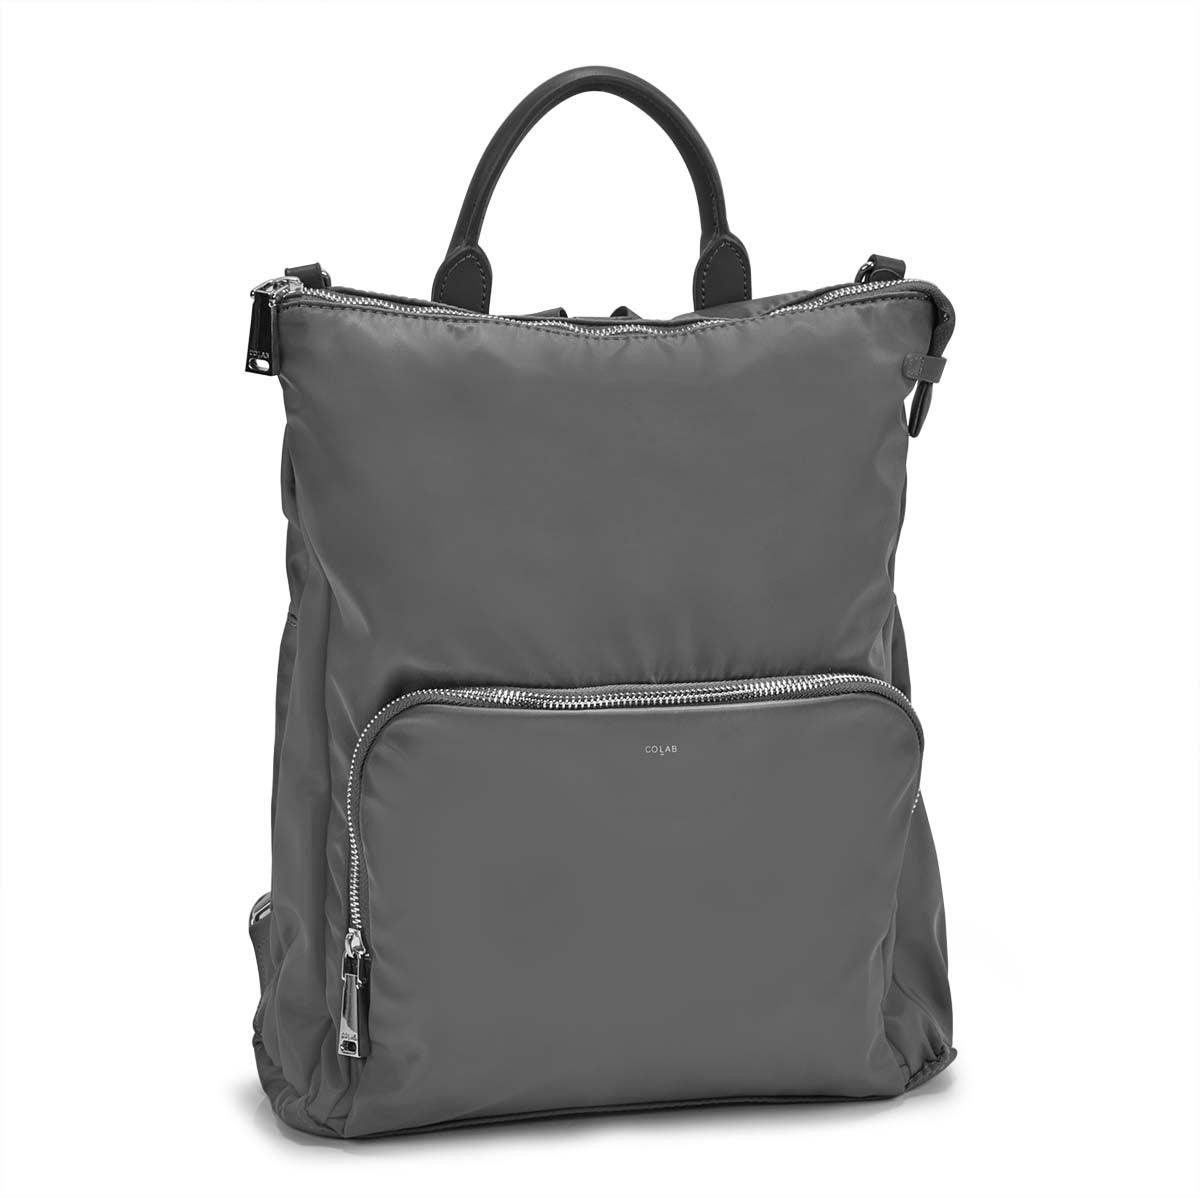 Women's NELLIE grey convertible backpack